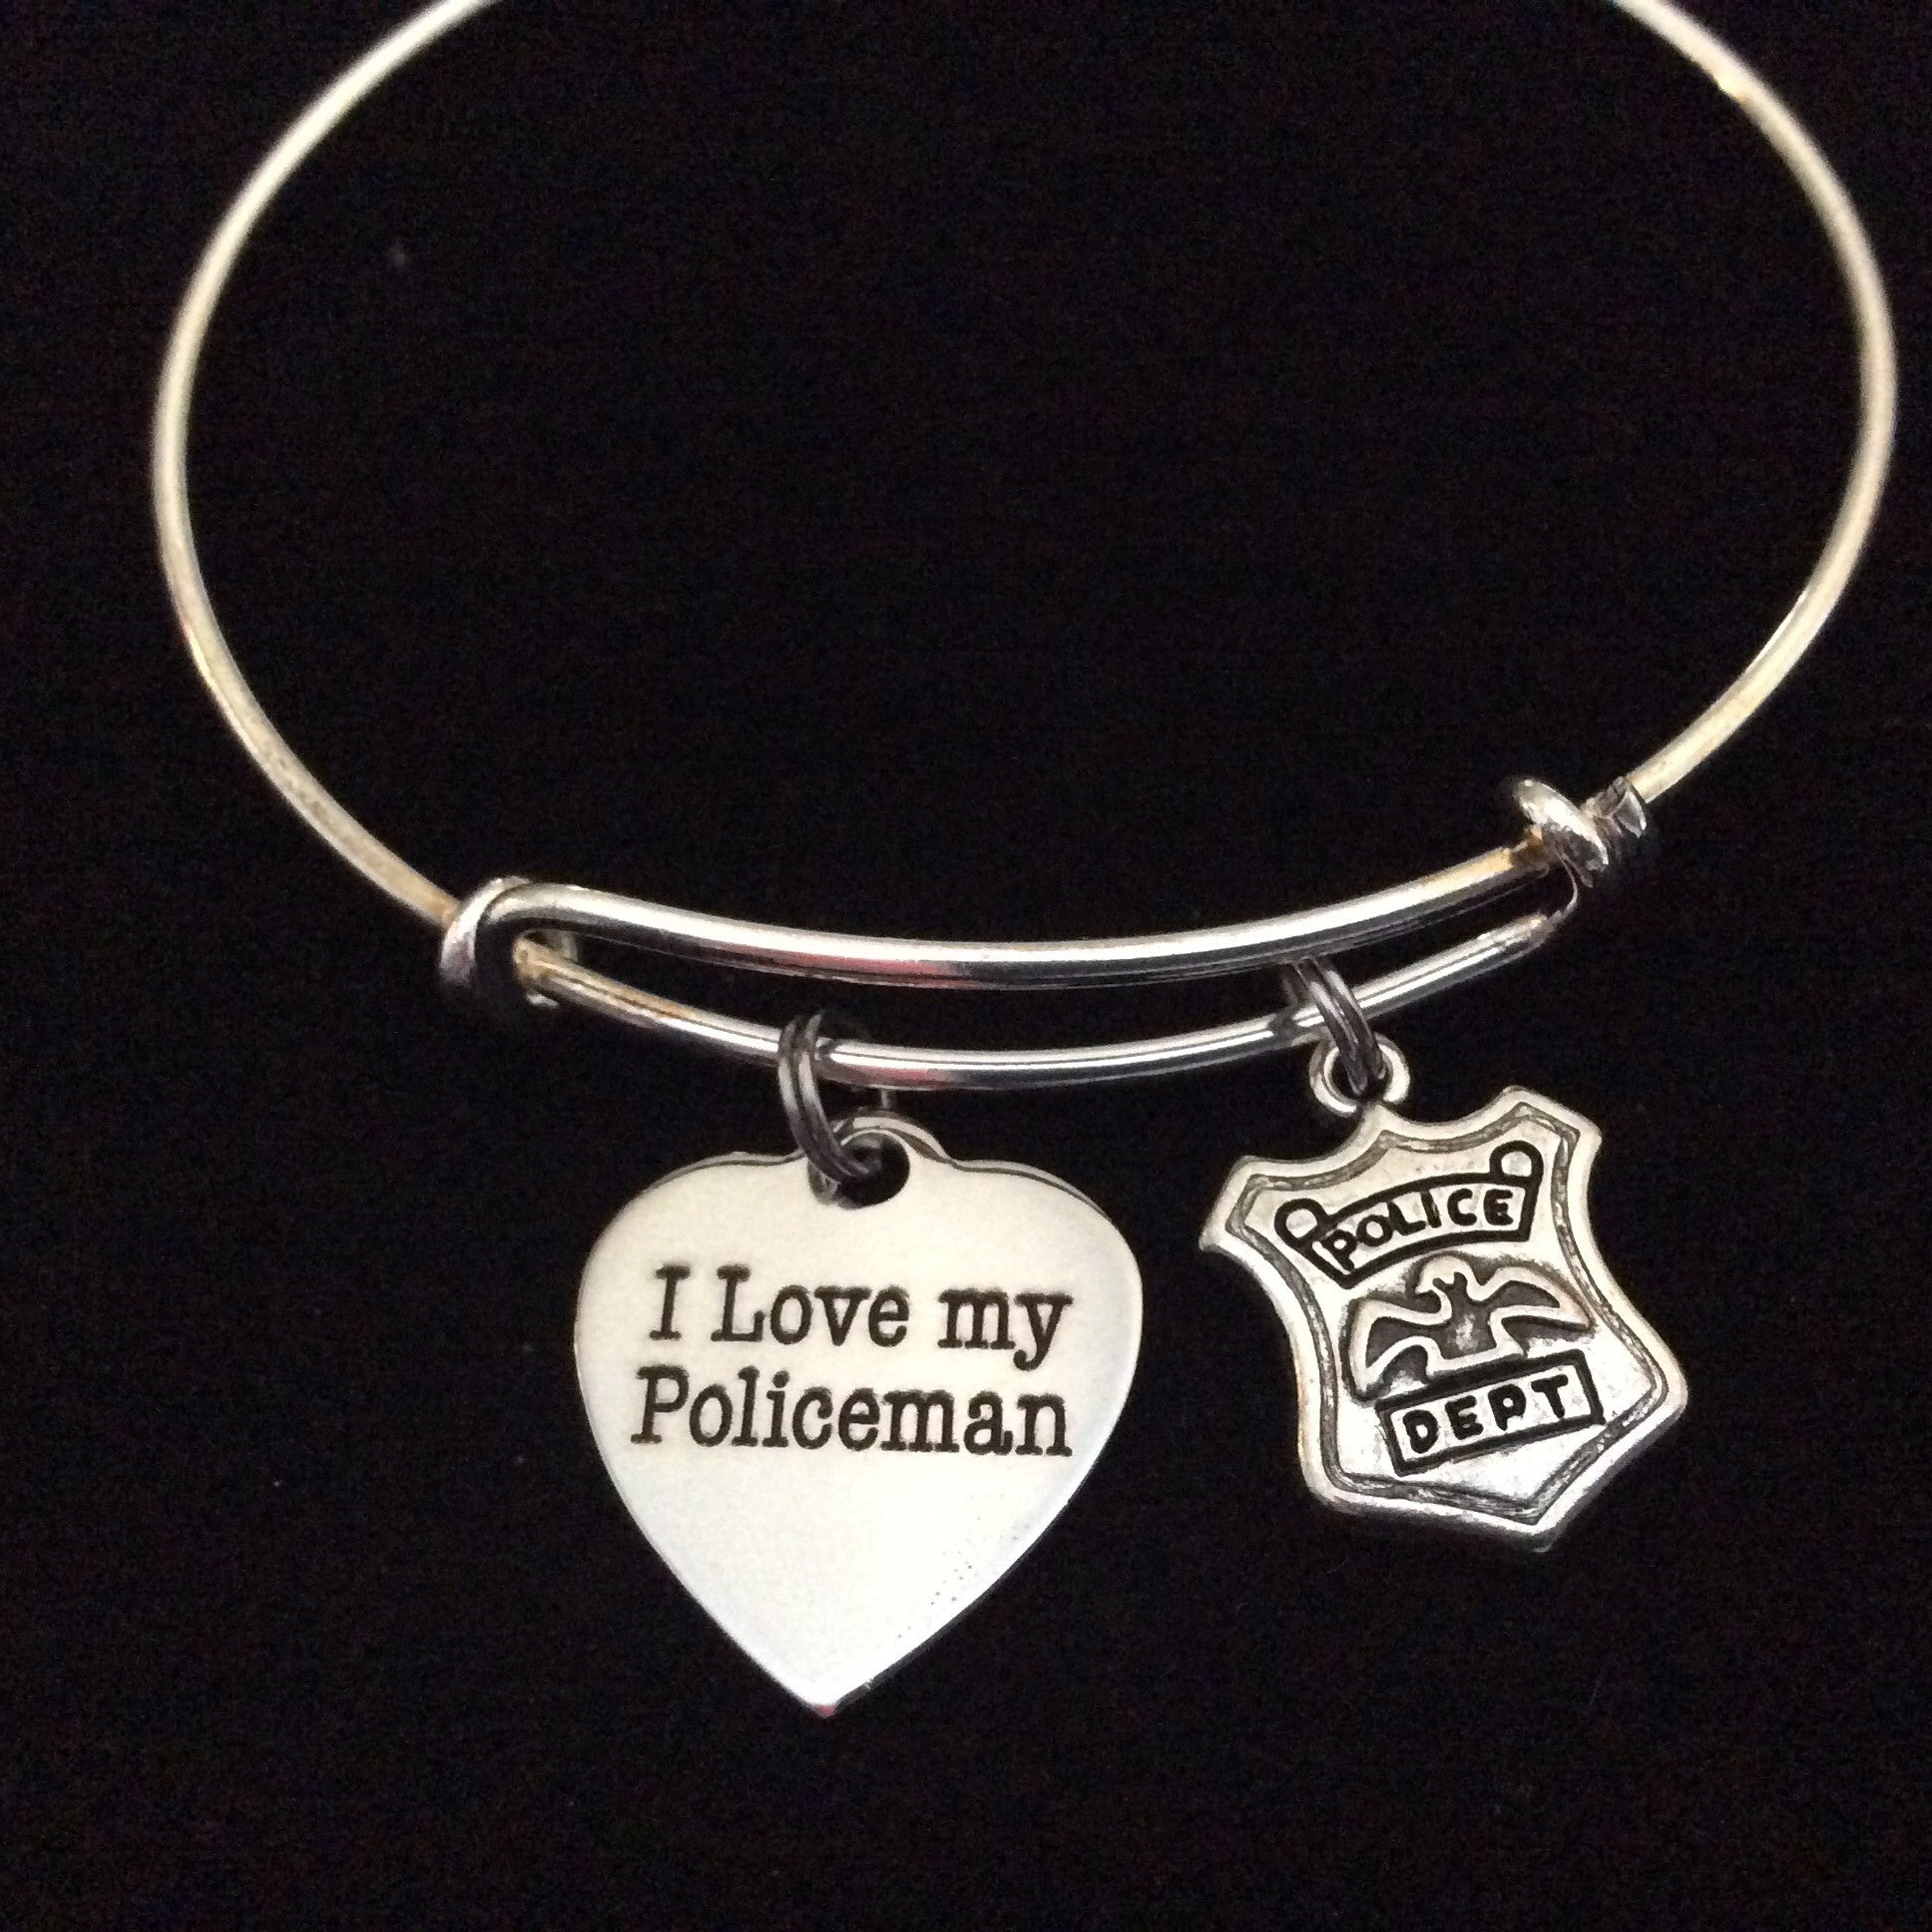 I love my policeman on expandable adjustable wire bangle bracelet i love my policeman on expandable adjustable wire bangle bracelet occupational police badge department wife gift mozeypictures Choice Image